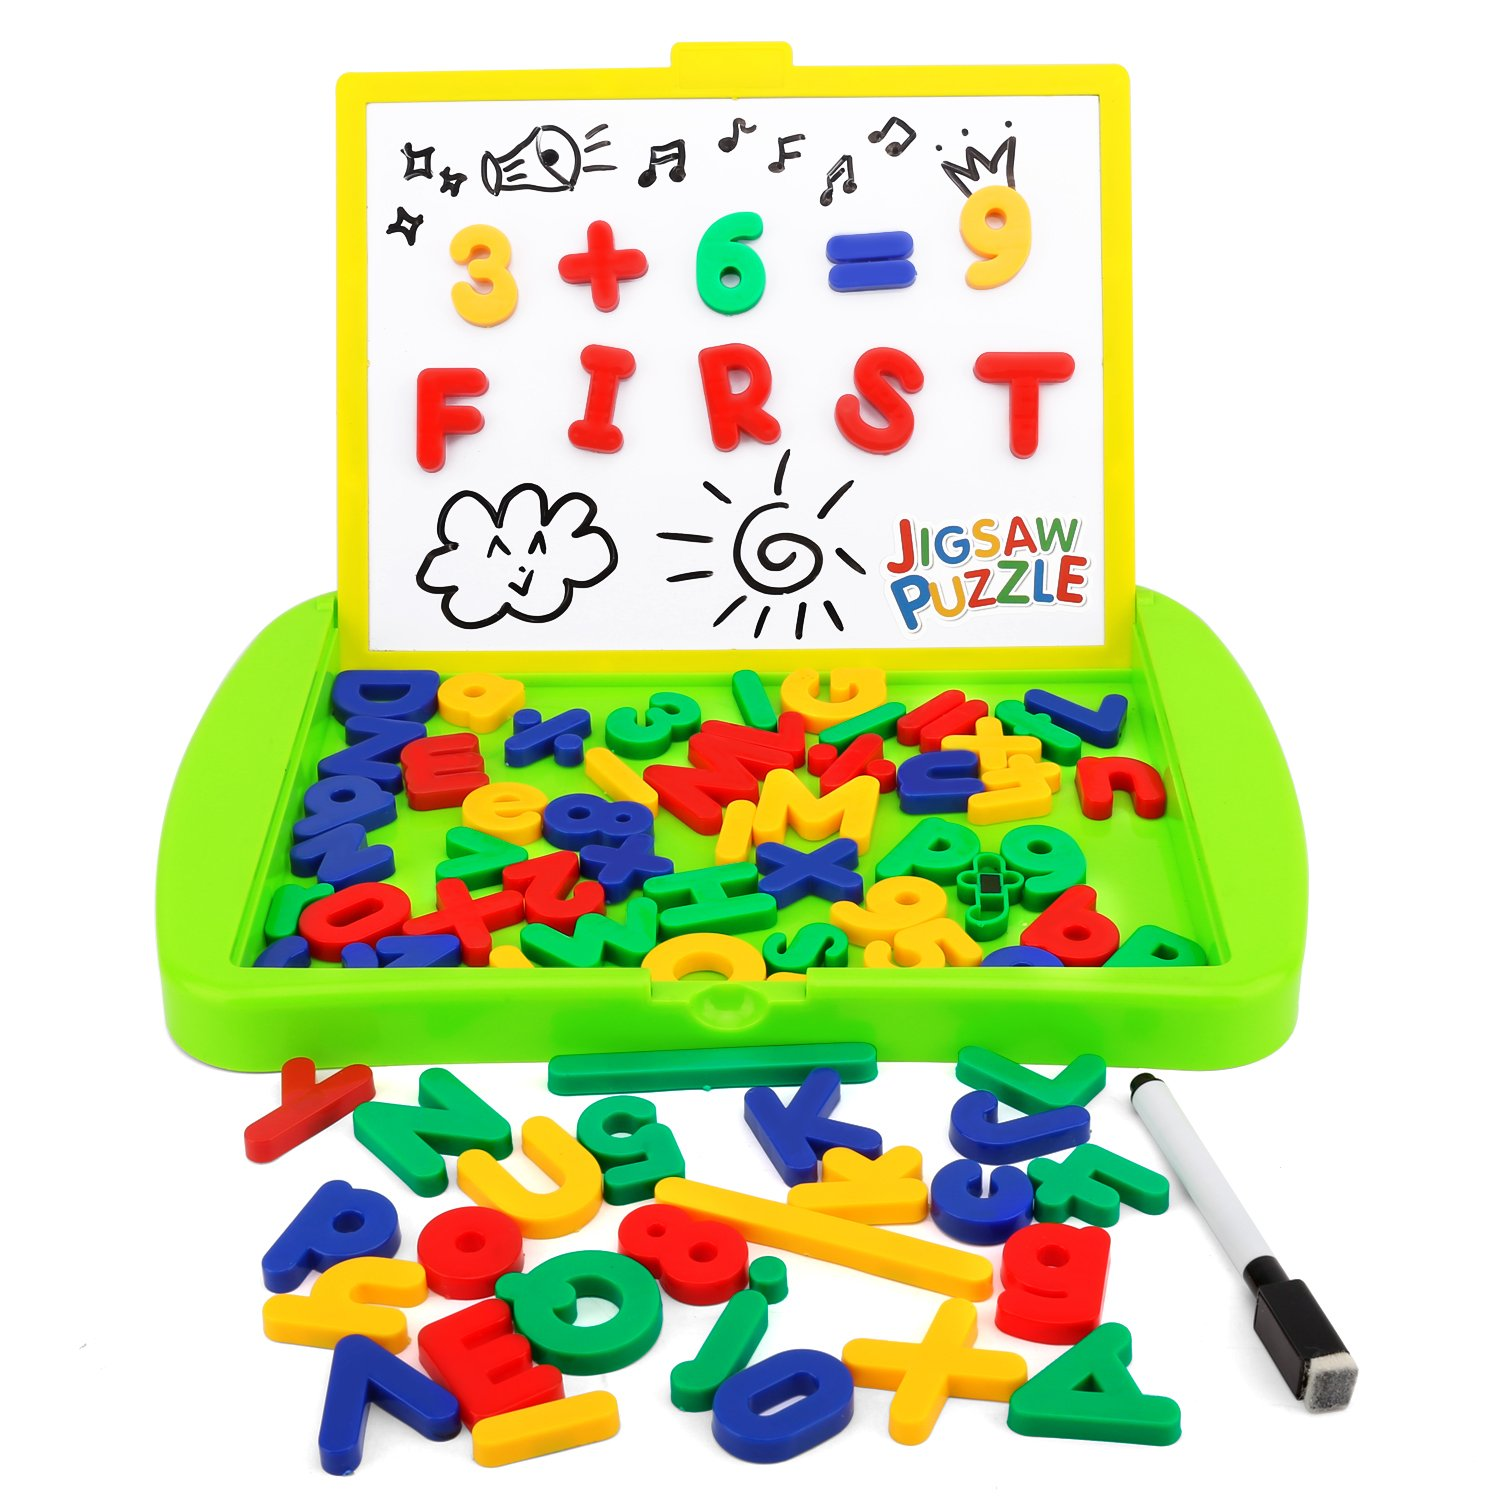 Zooawa Magnetic Easel Sketchpad Numbers Letters, [84 Pcs] Drawing Writing Whiteboard Educational Learning Toy Kids Over 3 - Colorful